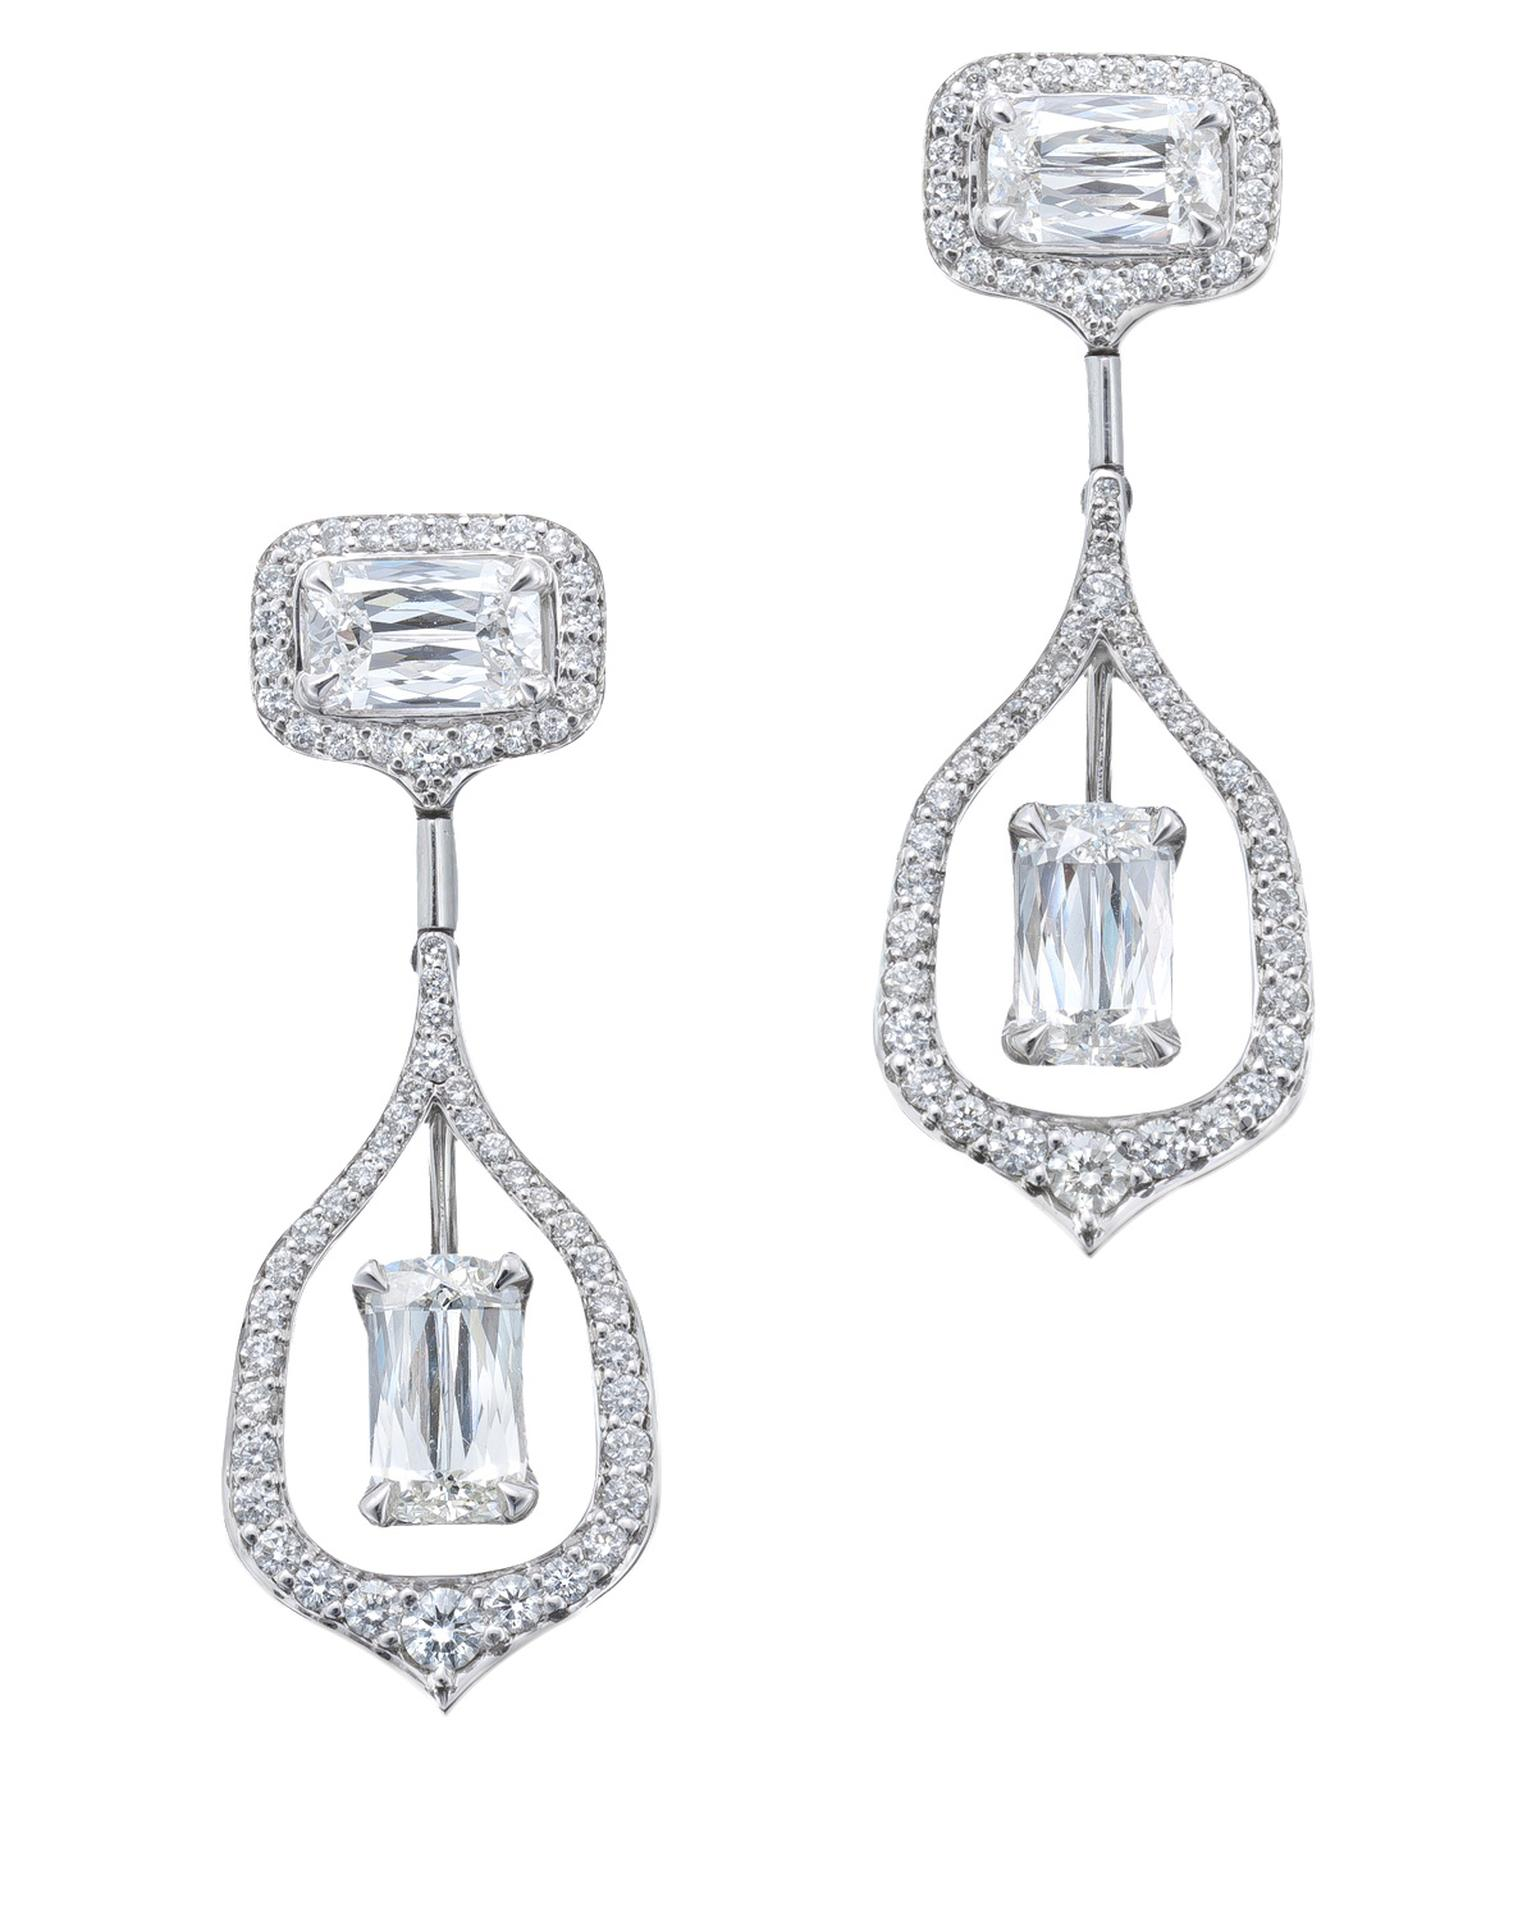 Boodles Wisteria Earrings_20131003_Zoom